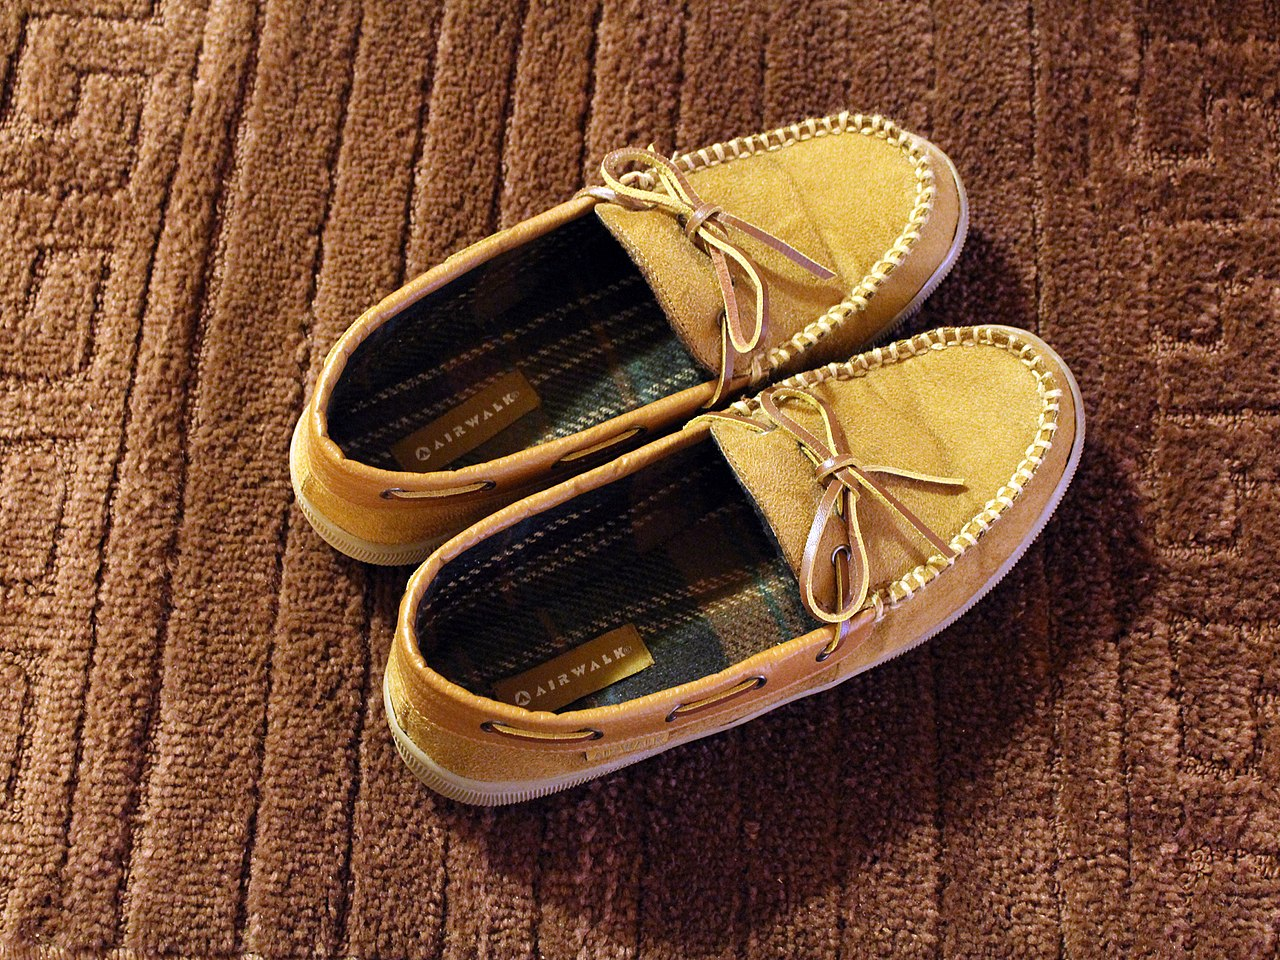 391bdb826915 File Airwalk Men s Mason Mocassin Slippers.JPG - Wikimedia Commons